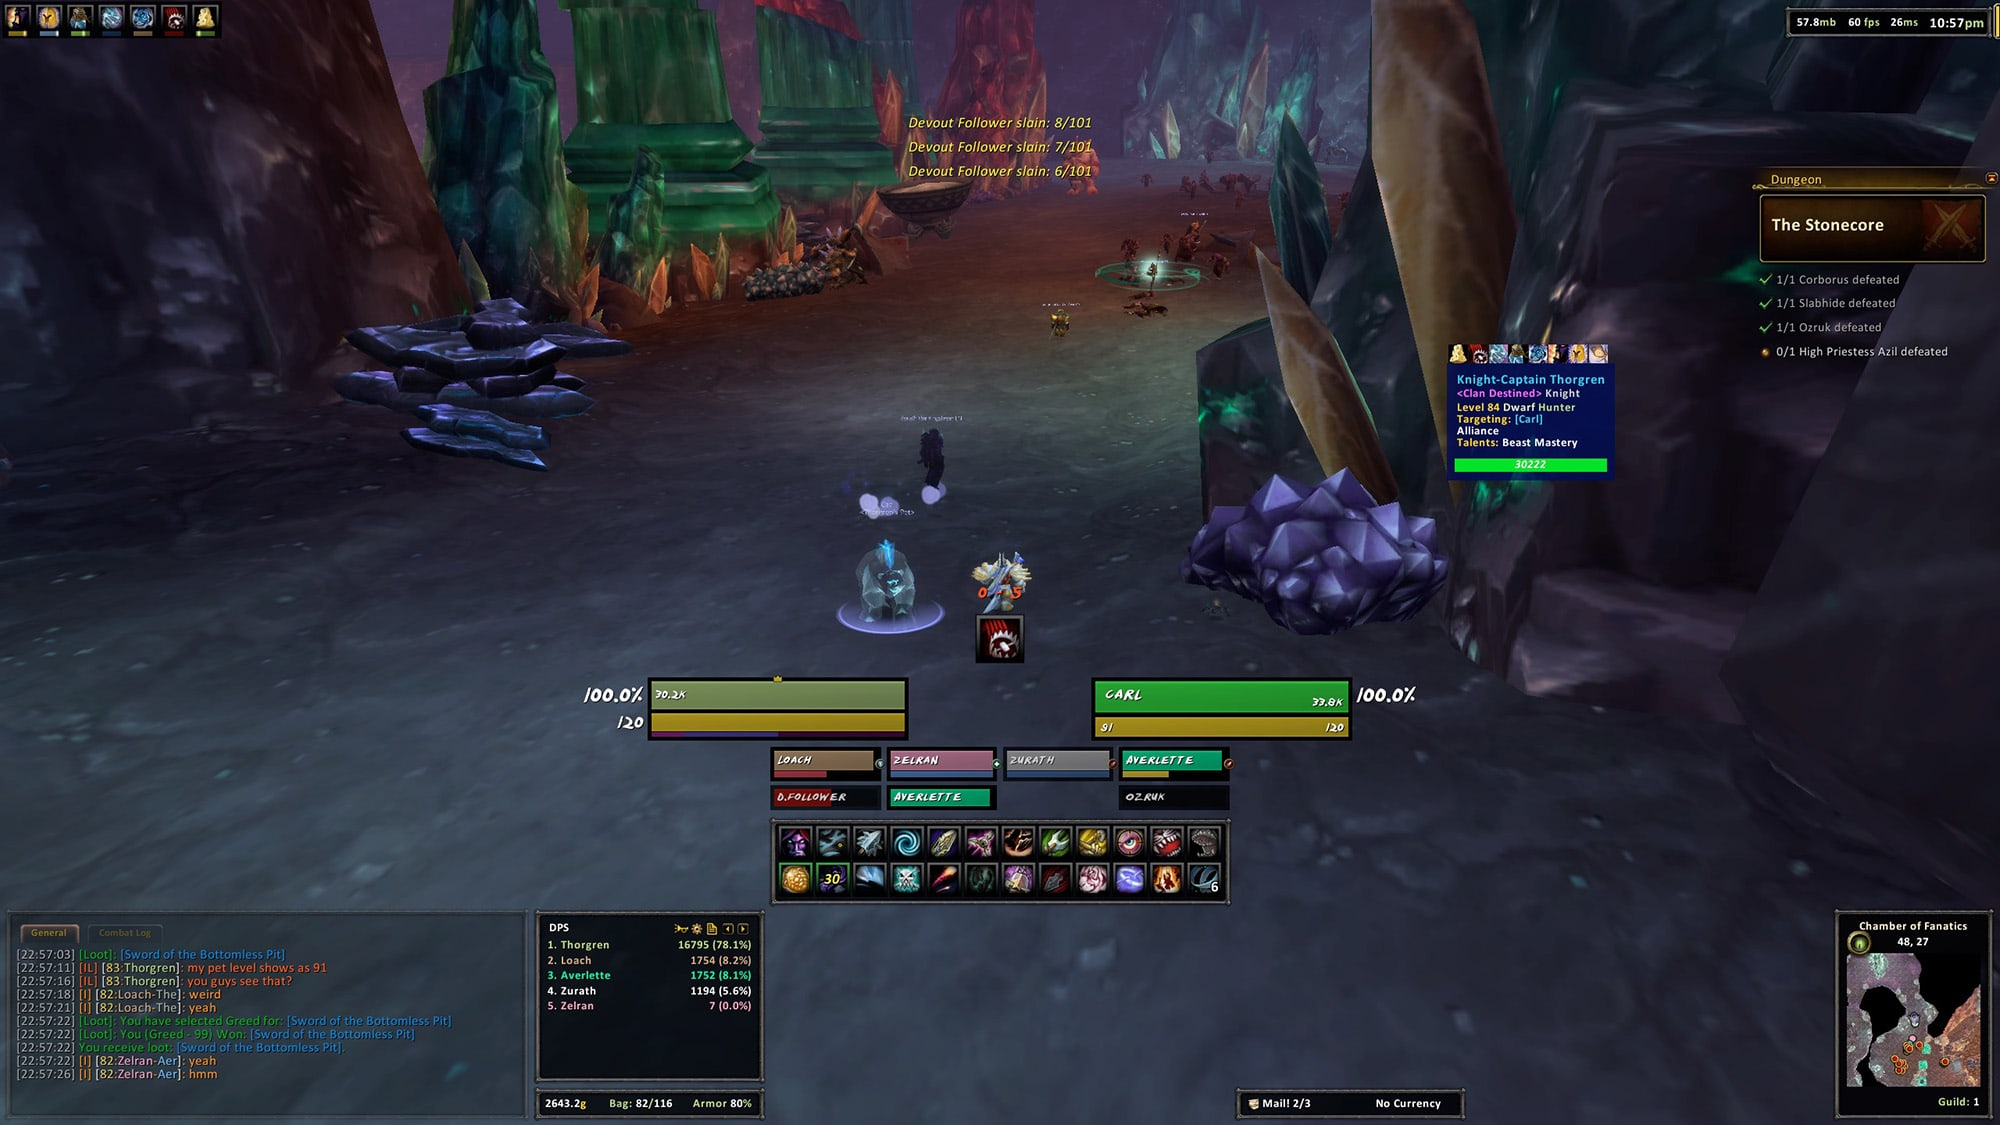 This screenshot shows my level in chat as 83, which is correct, but then it also shows my level as 84 on the tooltip and my pet's level as 91!